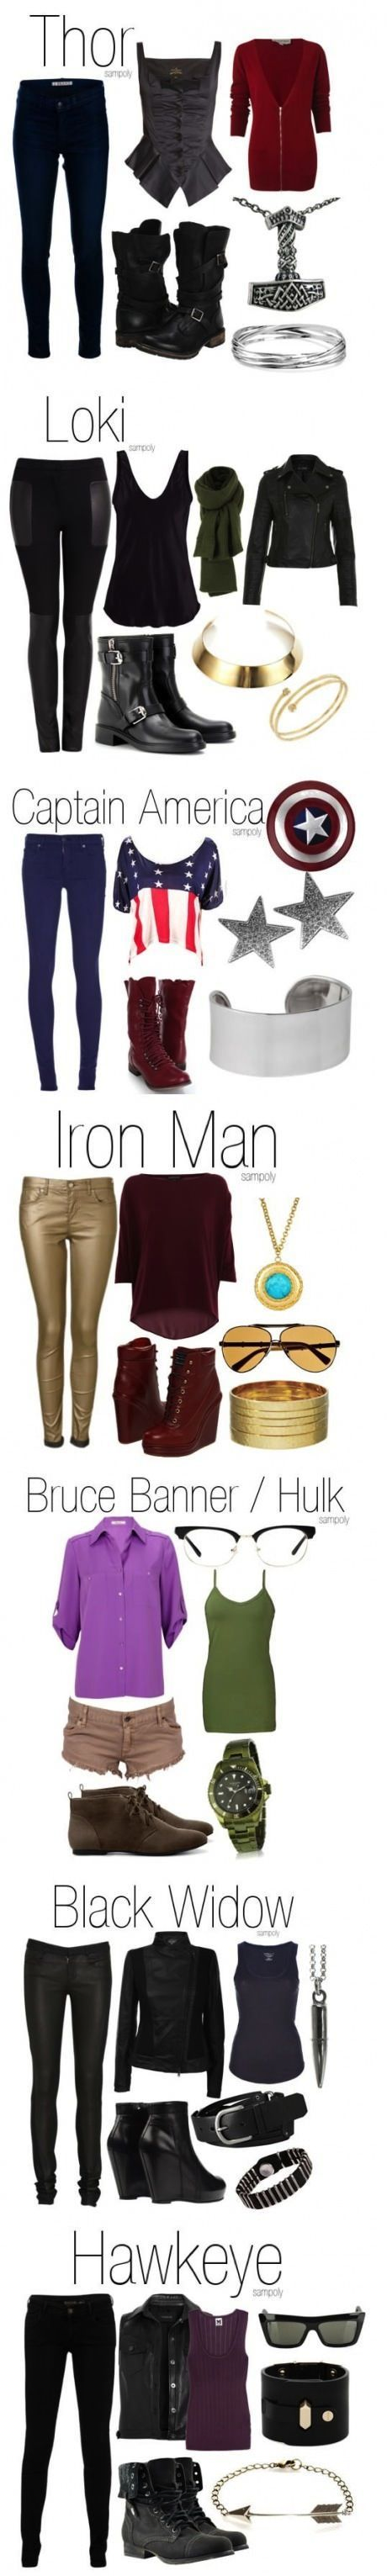 Avengers real life fashion. LOVE!: Avengers Outfit, Captain America, Avengers Fashion, Iron Man, Inspiration Outfit, Ironman, Super Heroes, Superhero, The Avengers